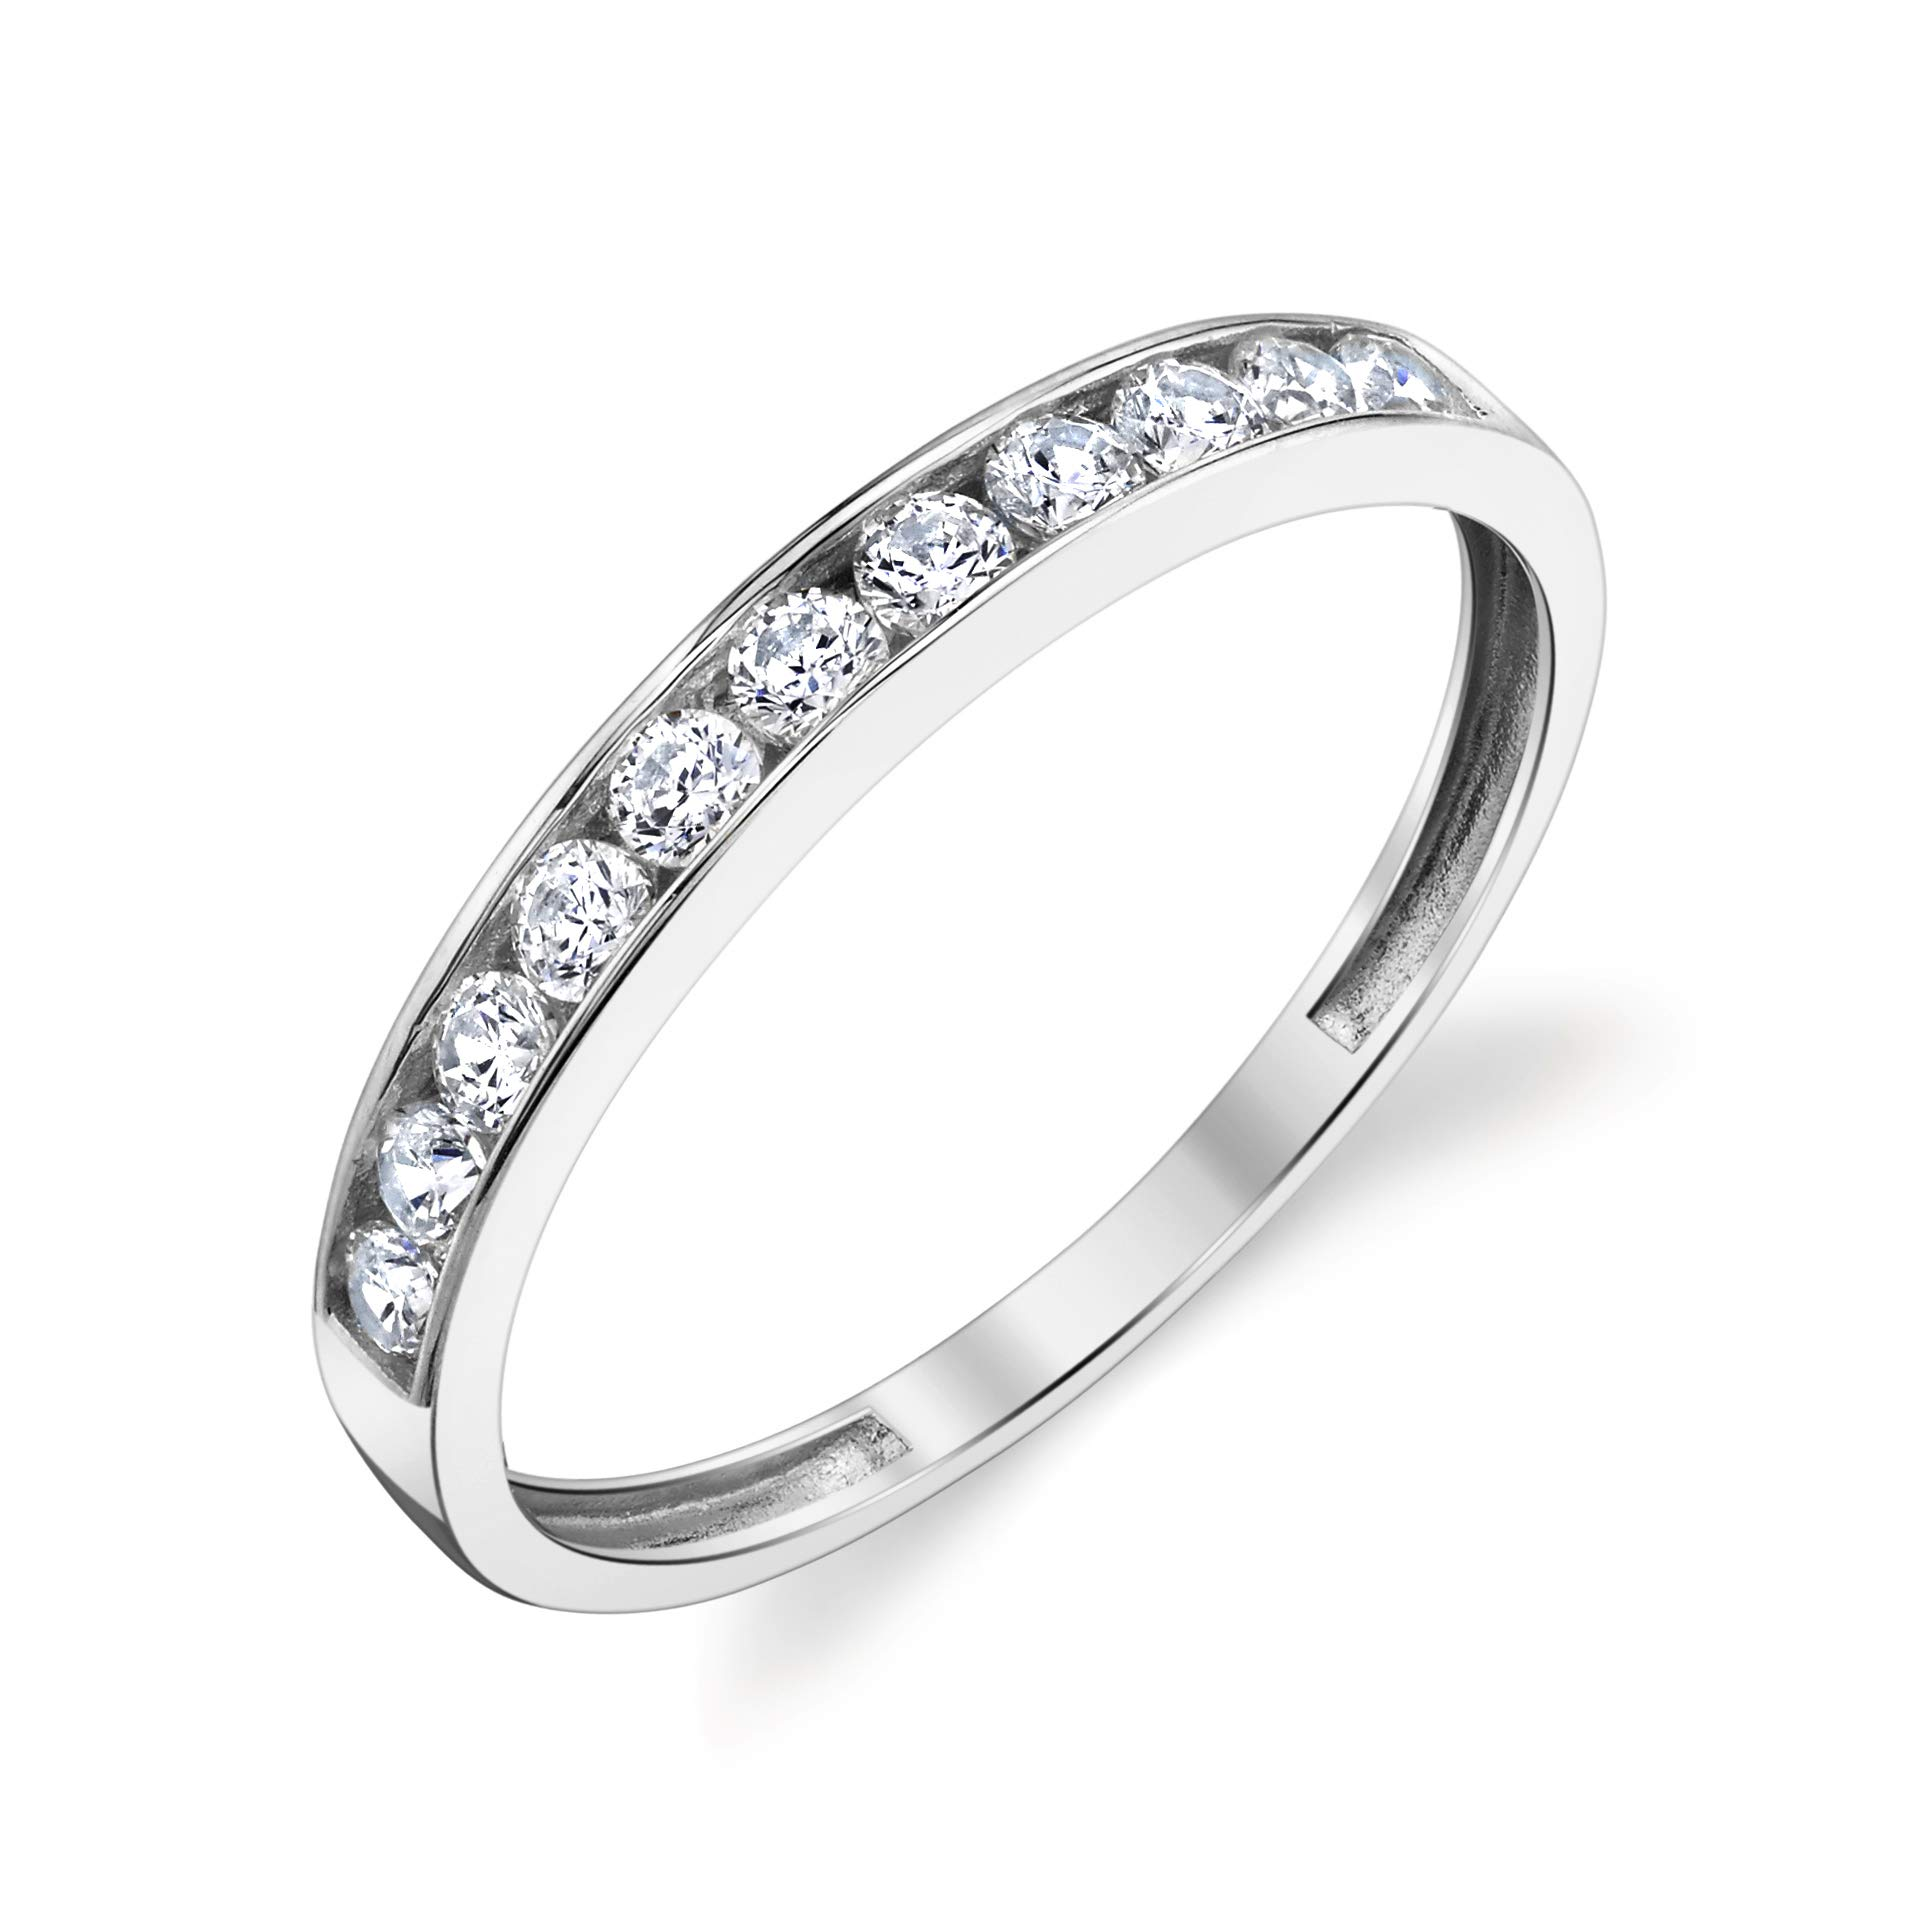 Tesori & Co 10k Solid White Gold Channel Wedding Band Ring Size 8 by Tesori & Co